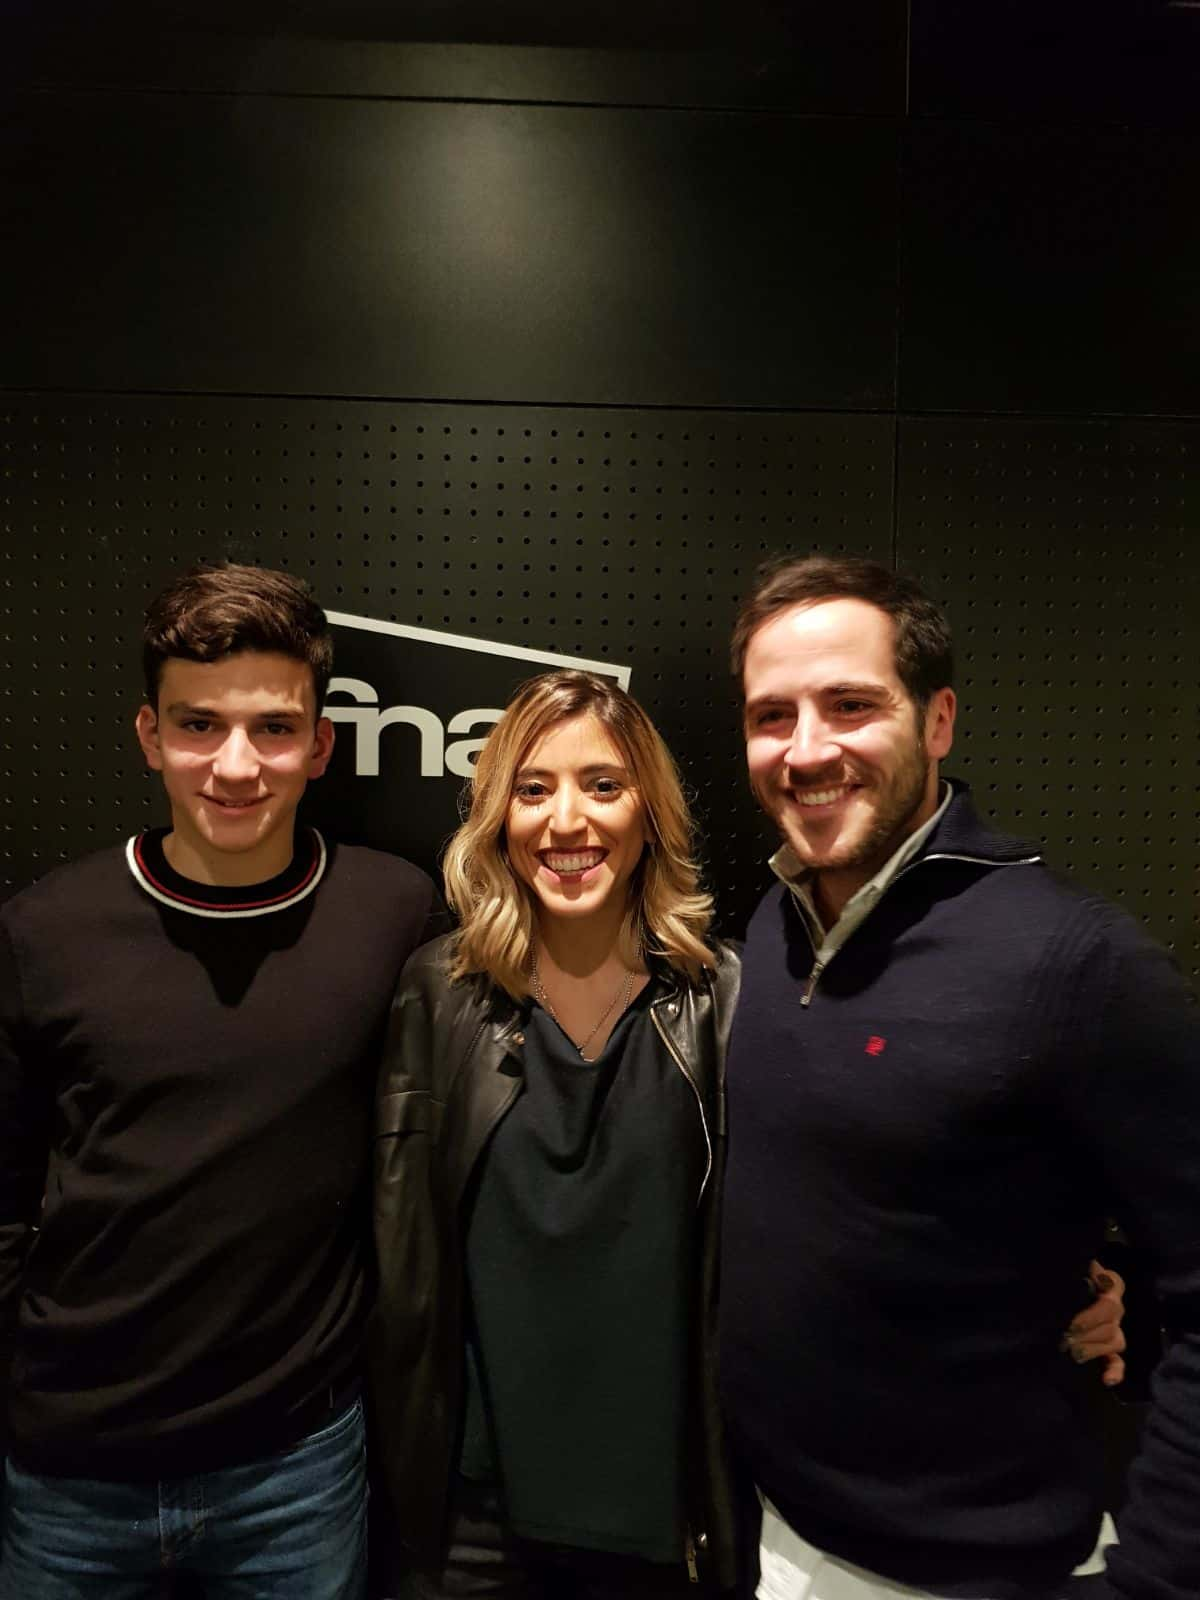 Bea with her brothers David and Daniel